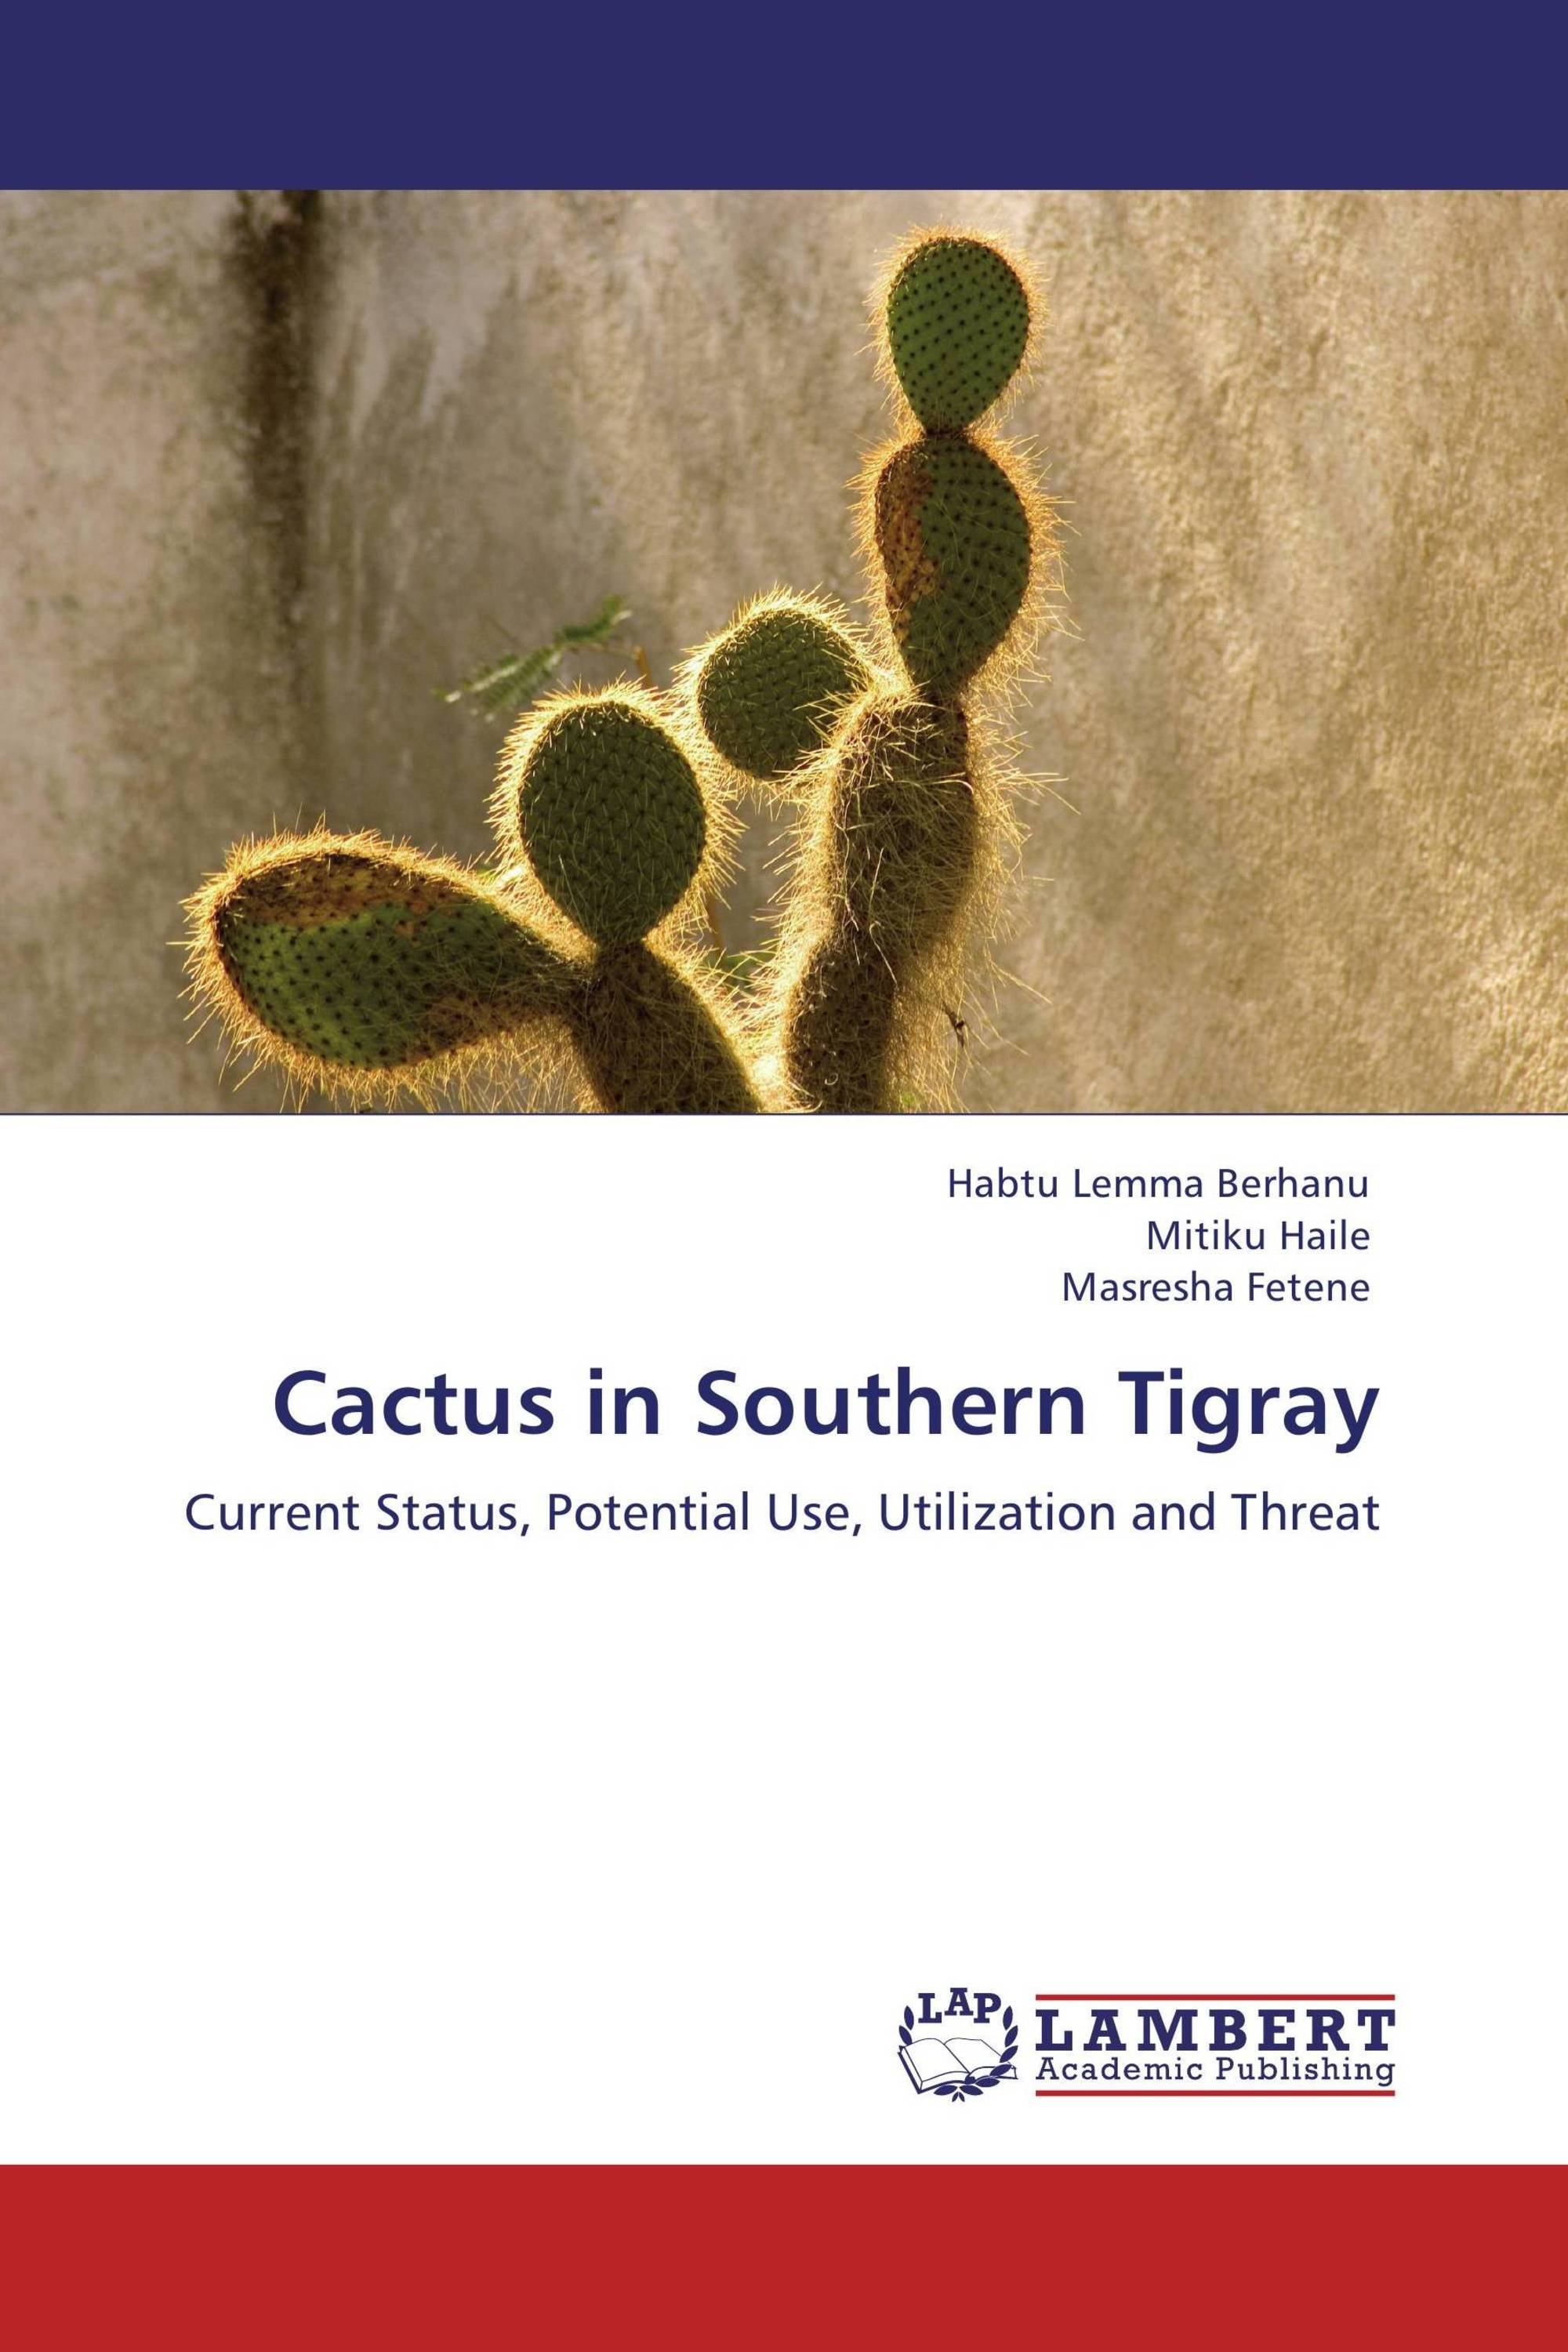 Cactus in Southern Tigray